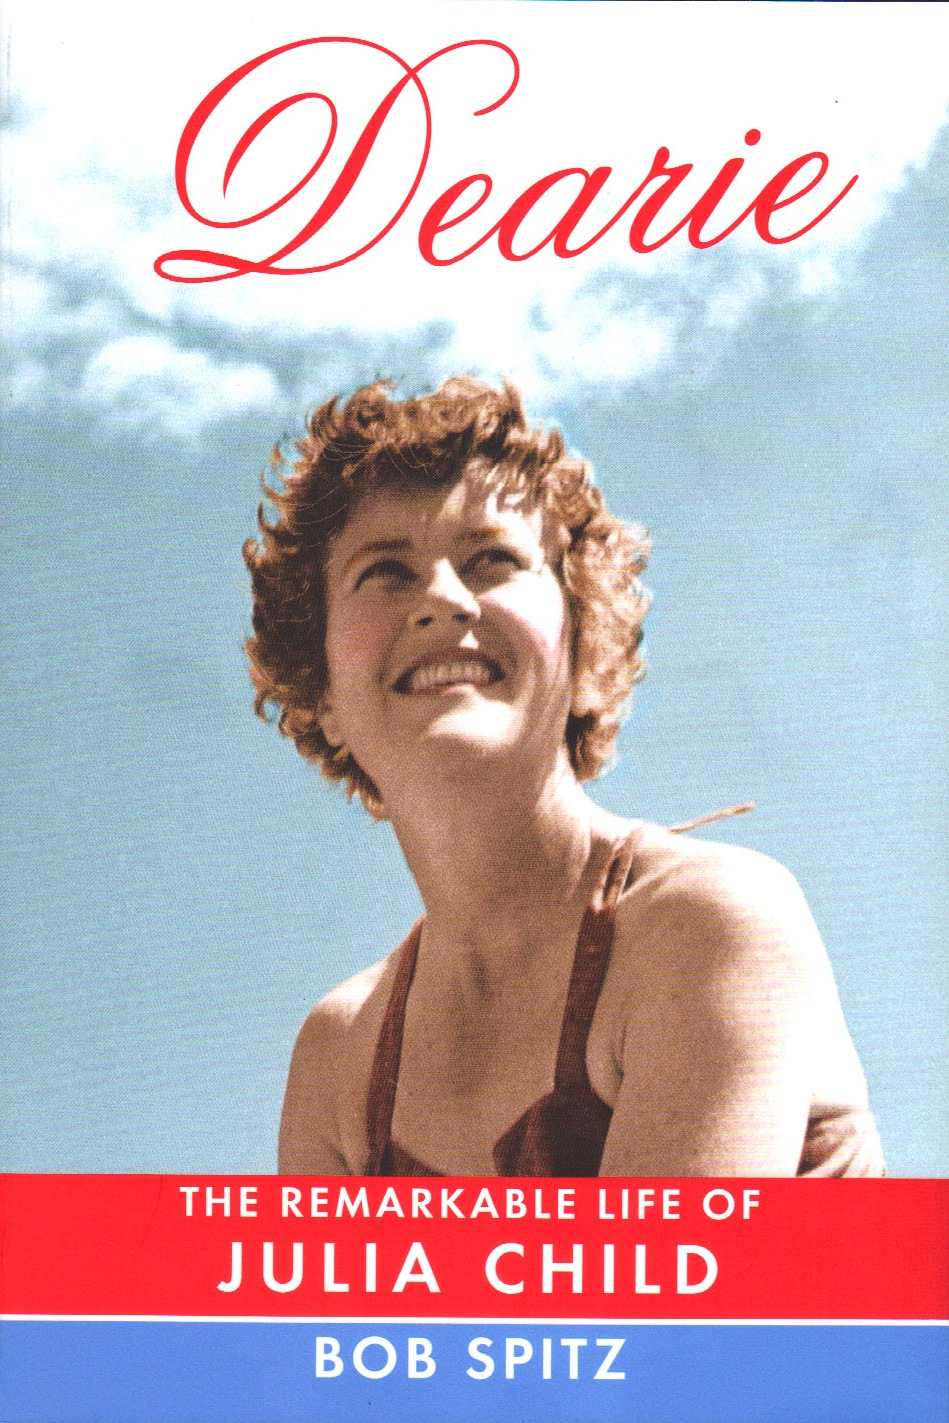 Dearie: The Remarkable Life of Julia Child by Bob Spitz book cover